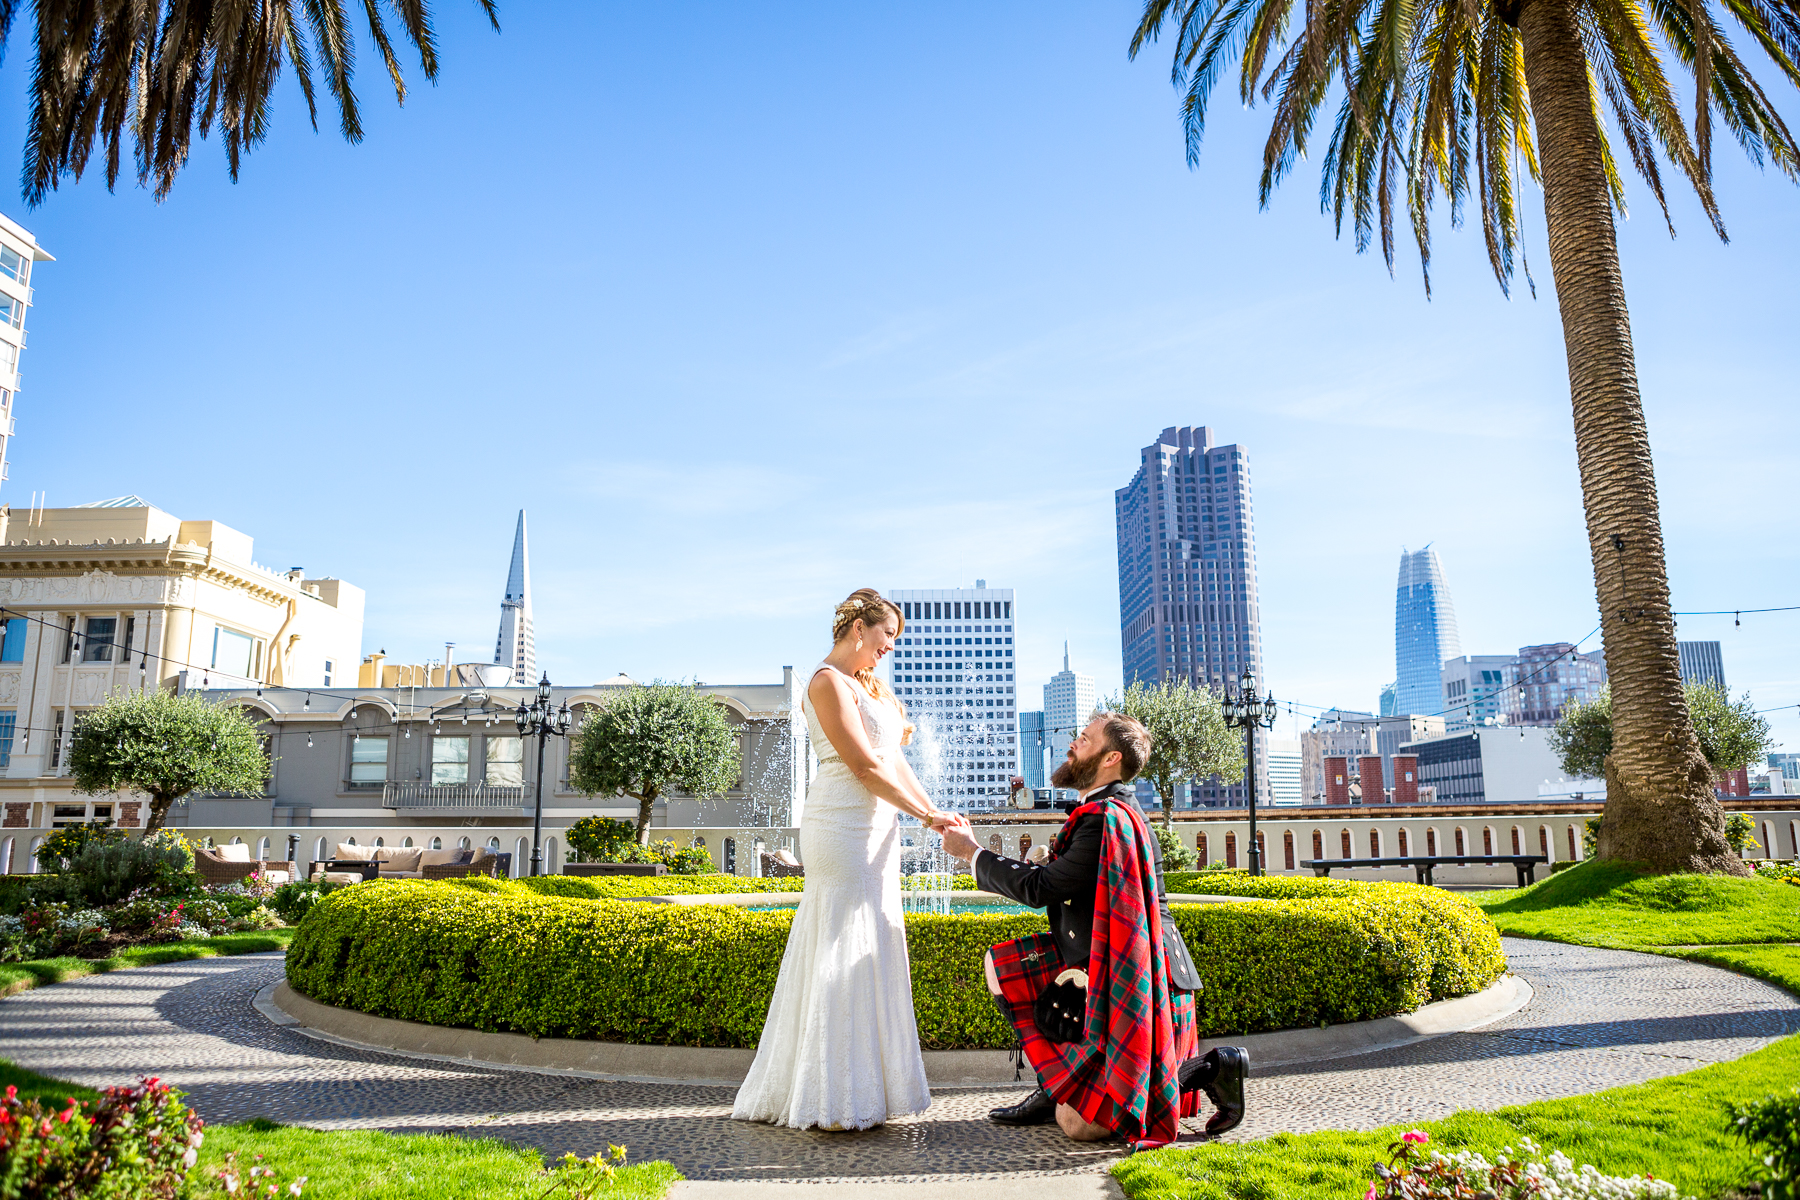 scottish groom on one knee on rooftop garden wedding at fairmont hotel in san francisco wedding photographer